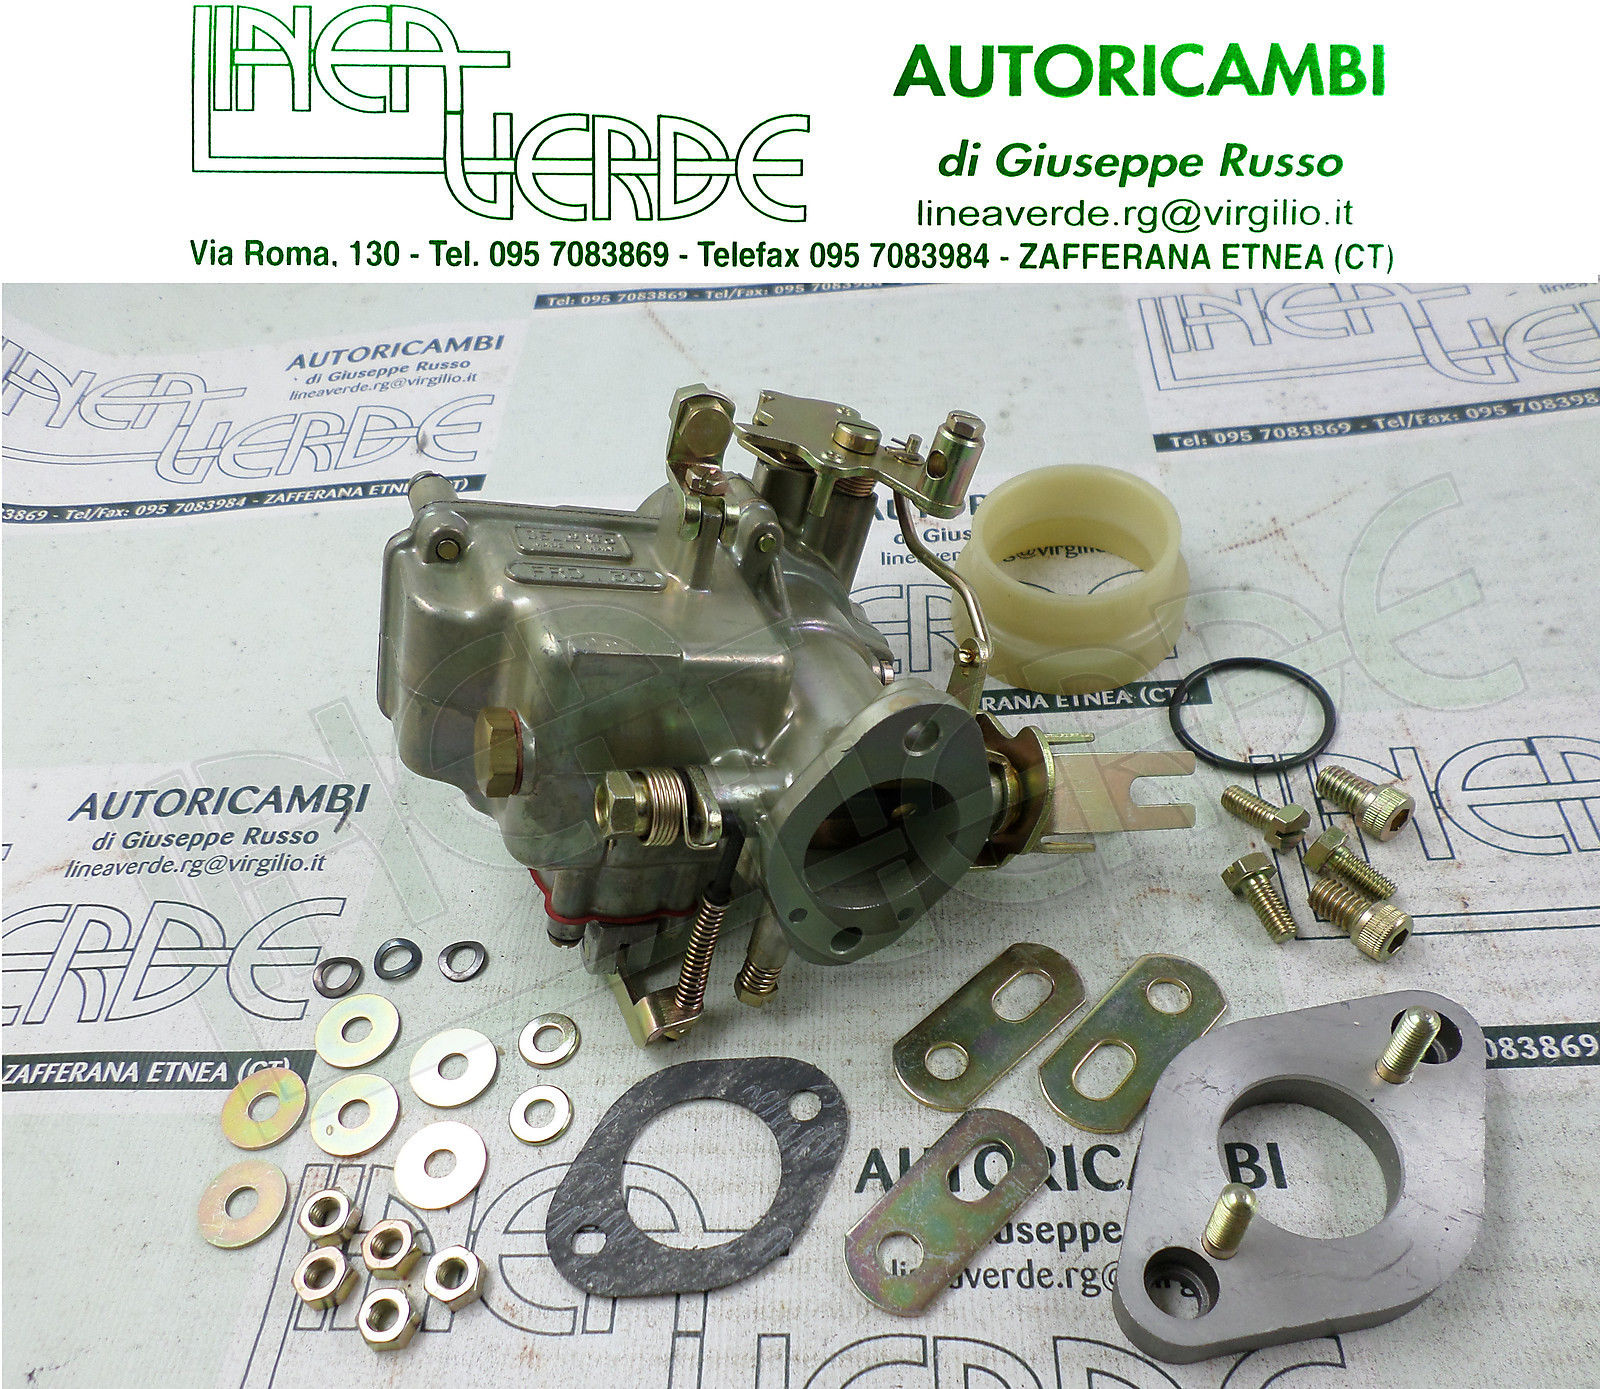 FORD ESCORT 940 MOD 71 CARBURATORE DELL'ORTO FRD30 MONOCORPO INVERTITO